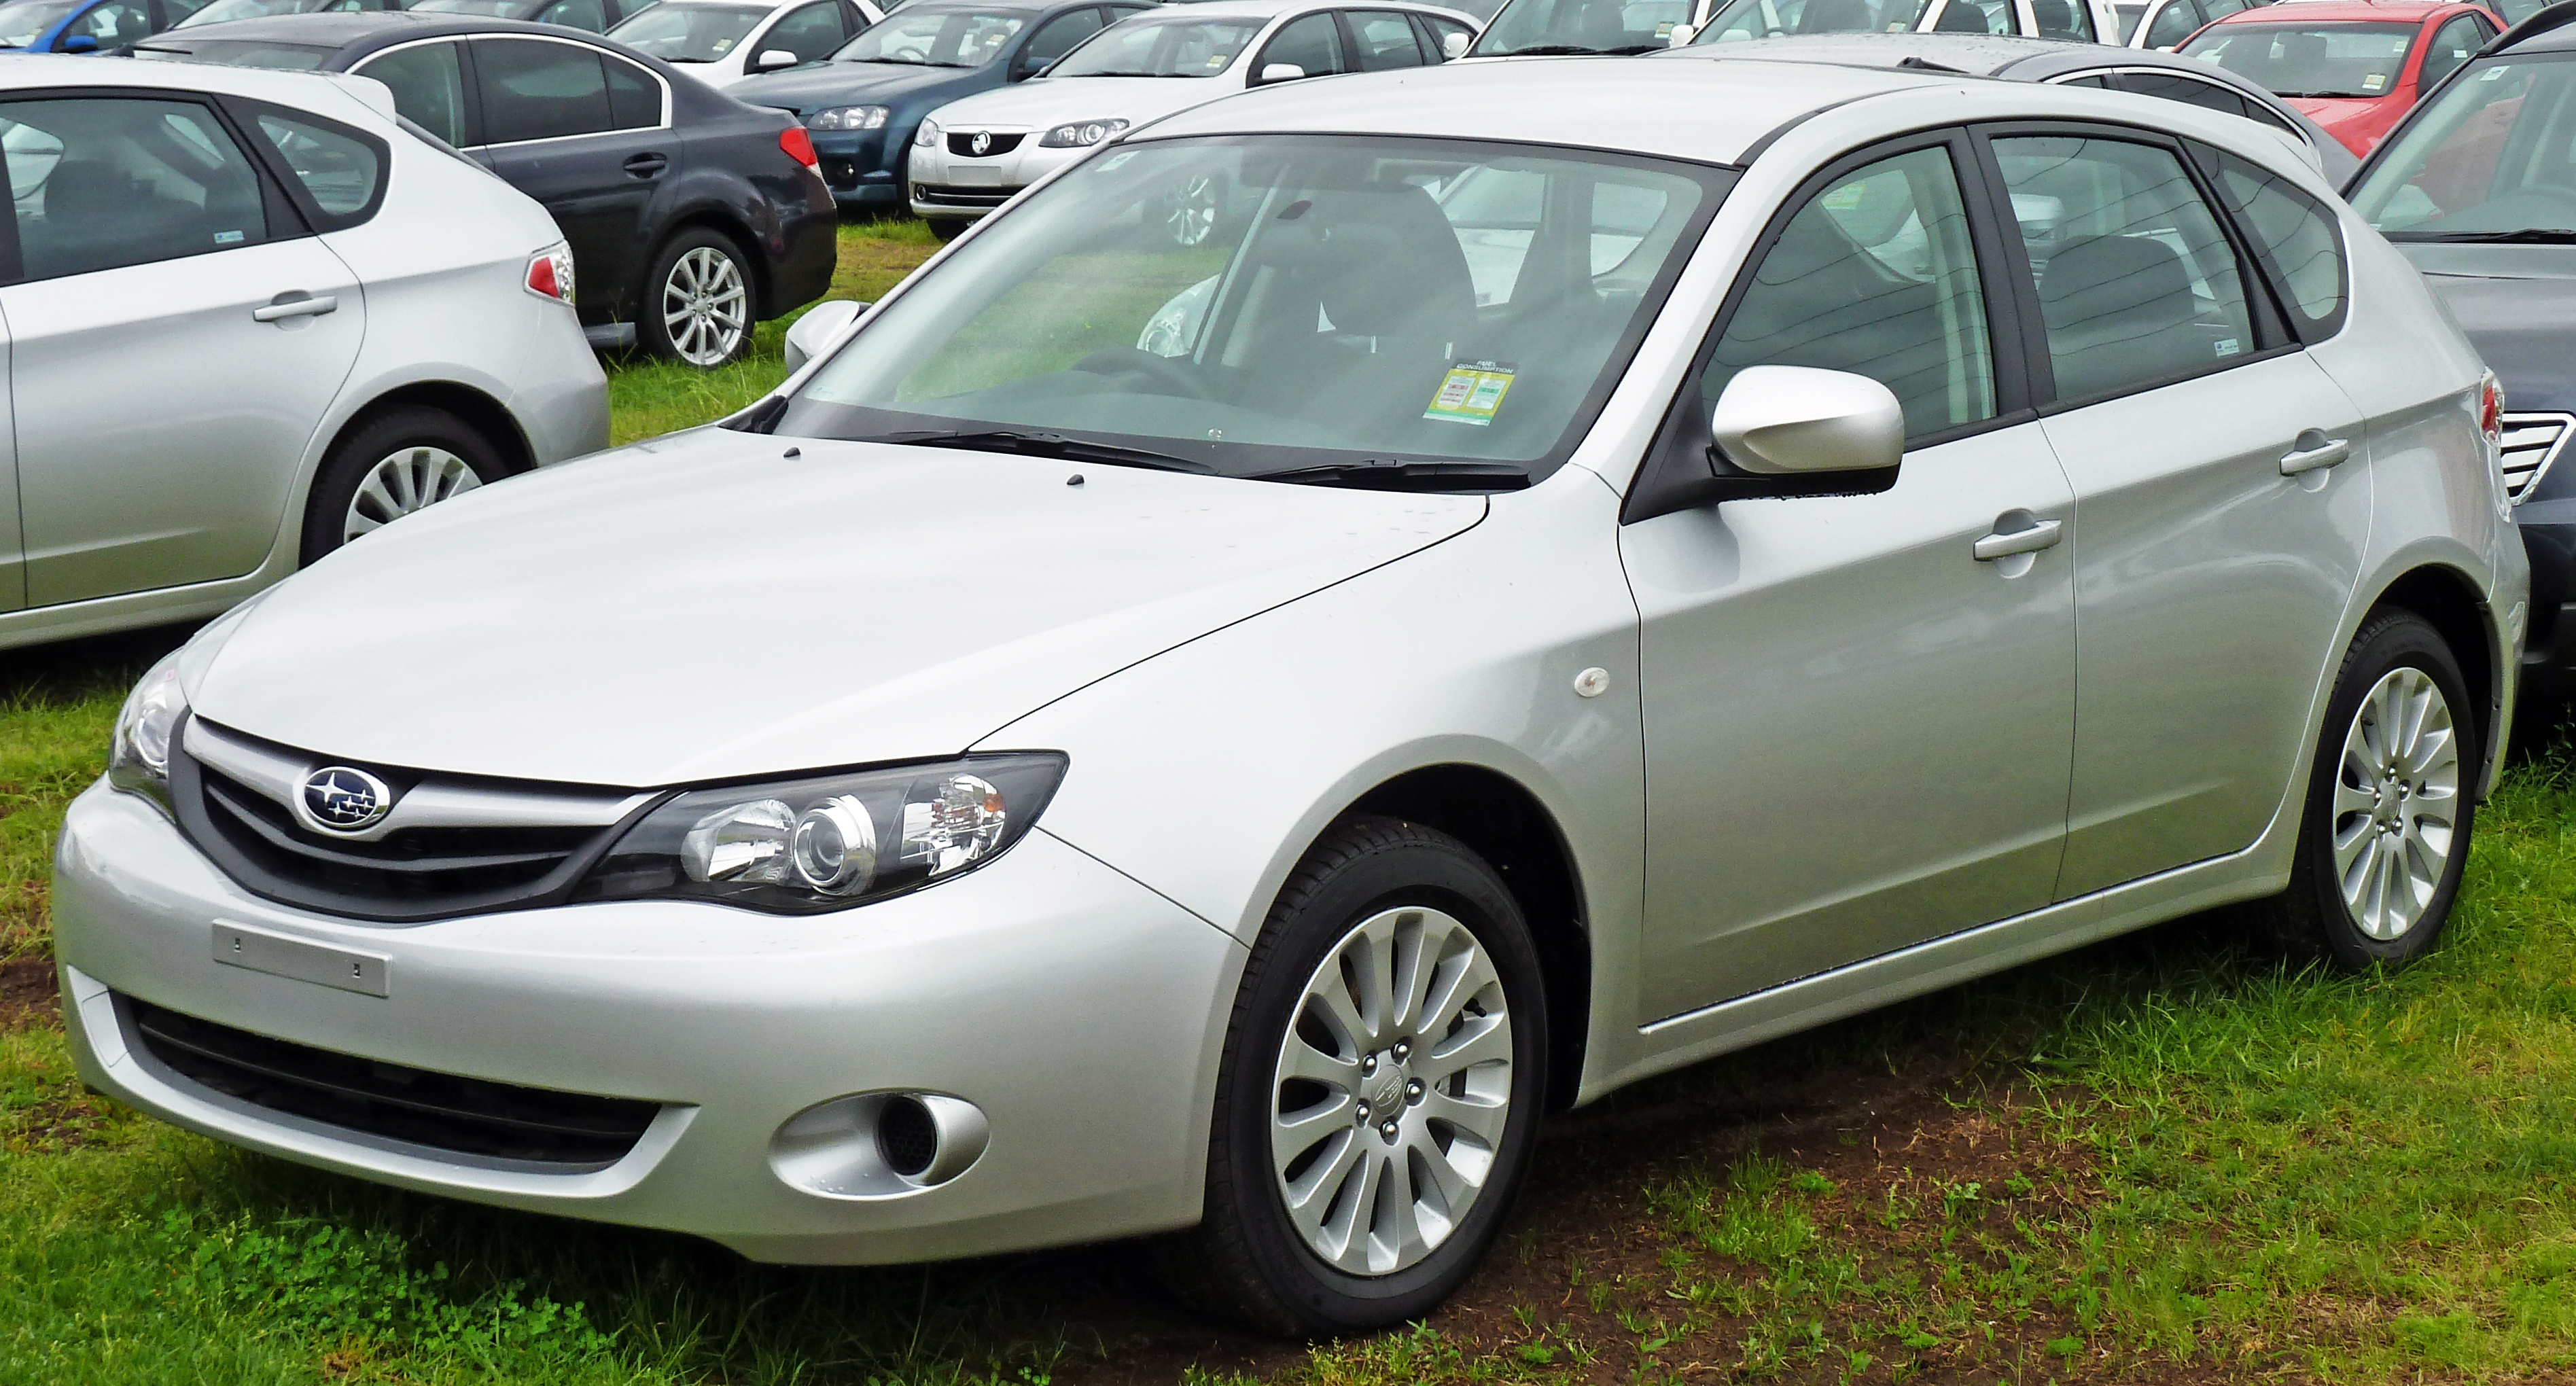 file 2010 subaru impreza gh7 my11 rx hatchback. Black Bedroom Furniture Sets. Home Design Ideas